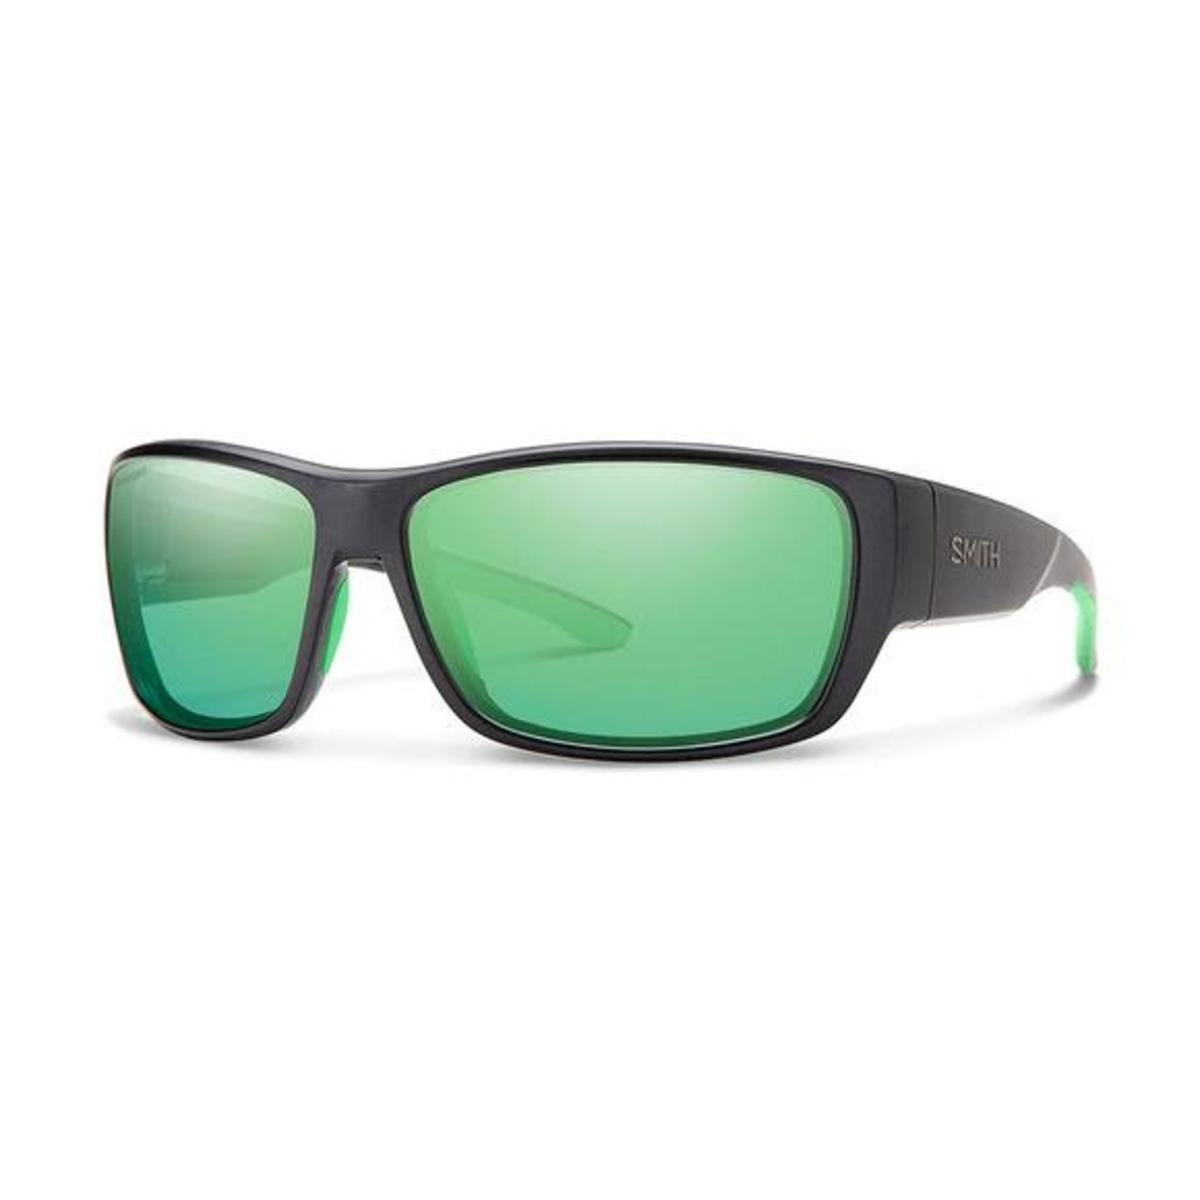 Smith Forge Men's Sunglasses